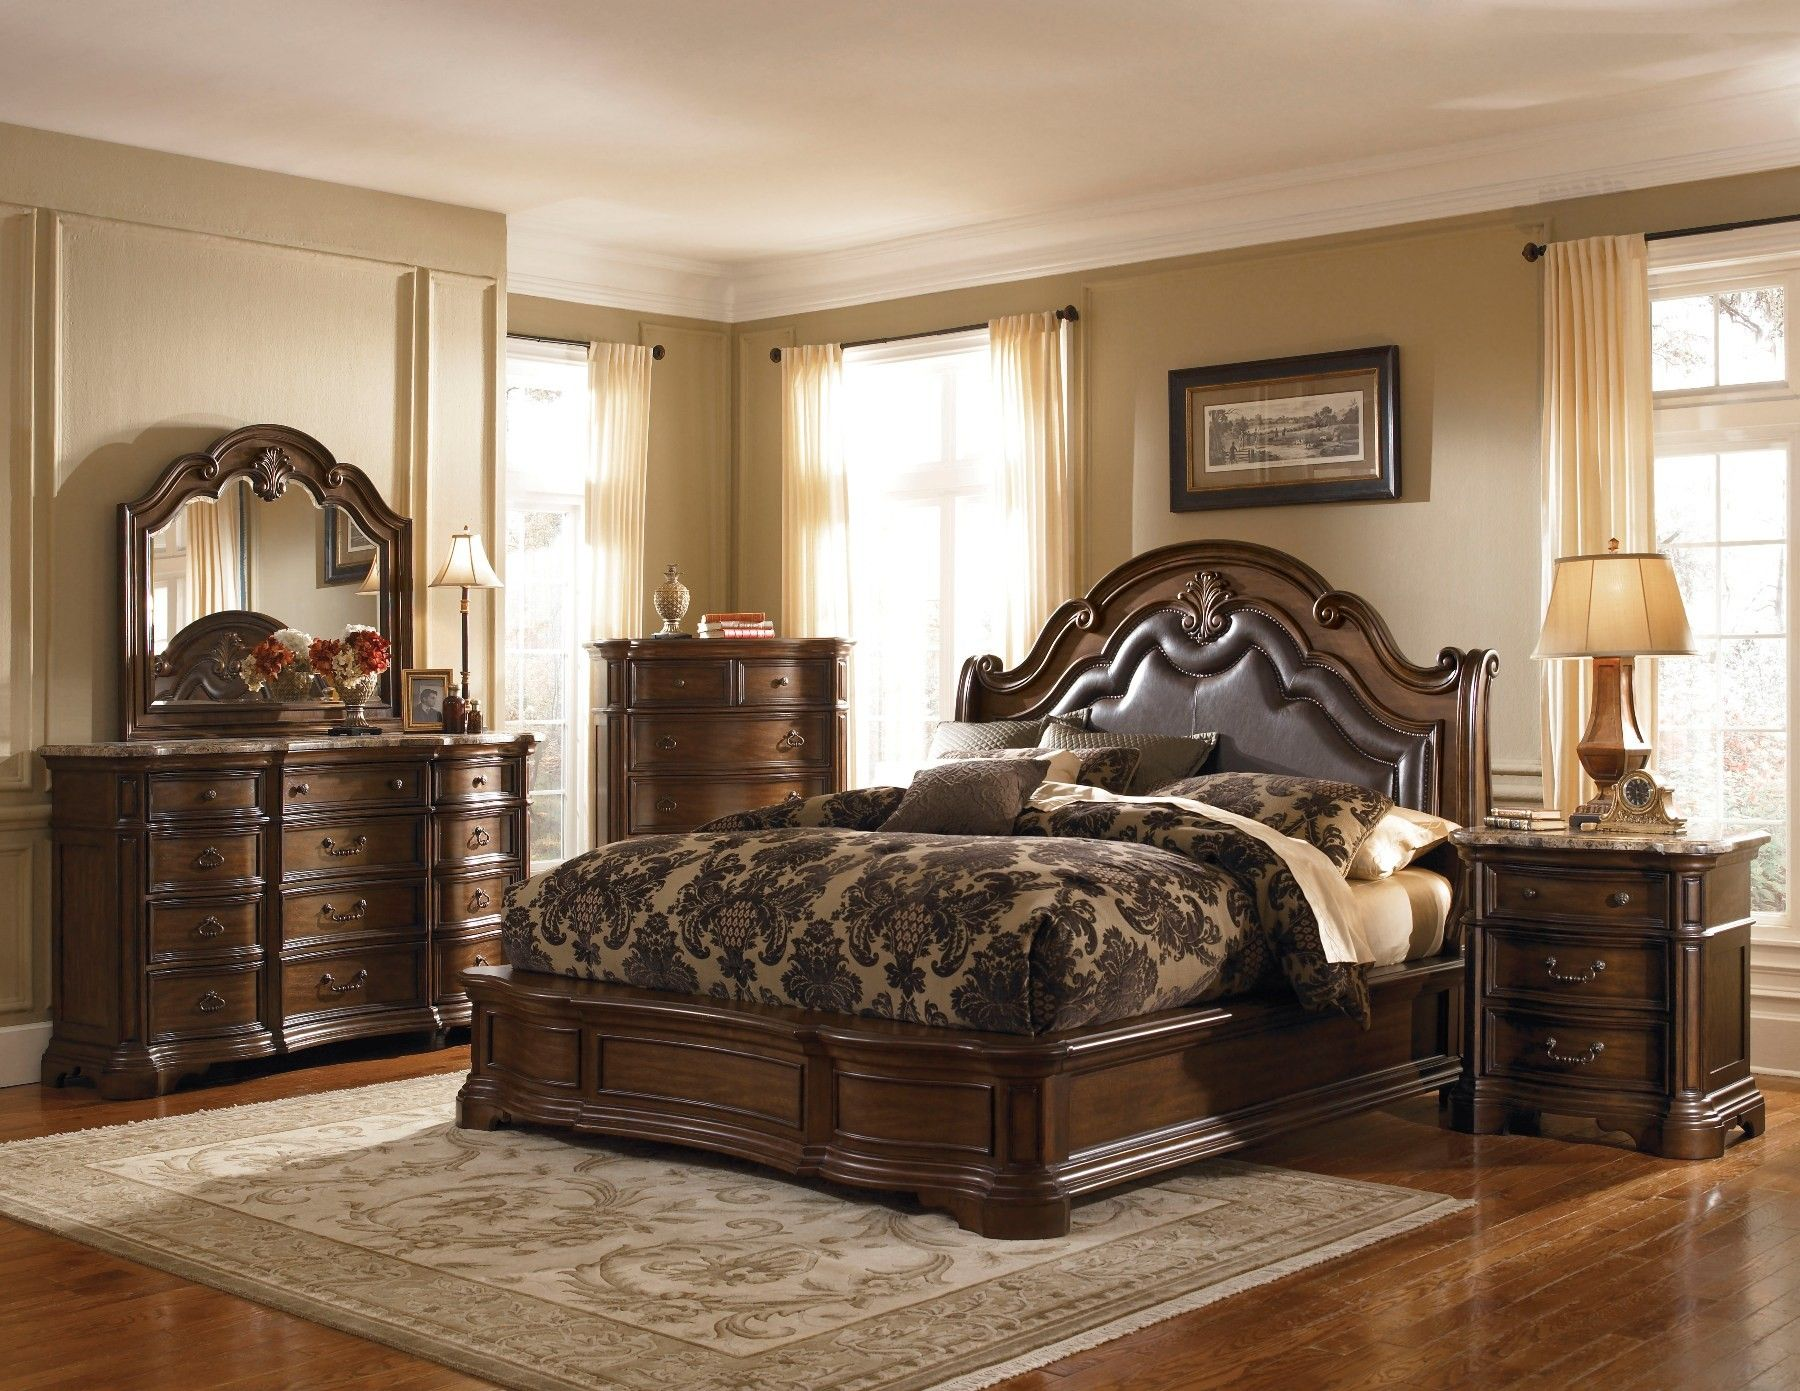 Pulaski bedroom furniture wholesale closeouts courtland - Closeout bedroom furniture online ...